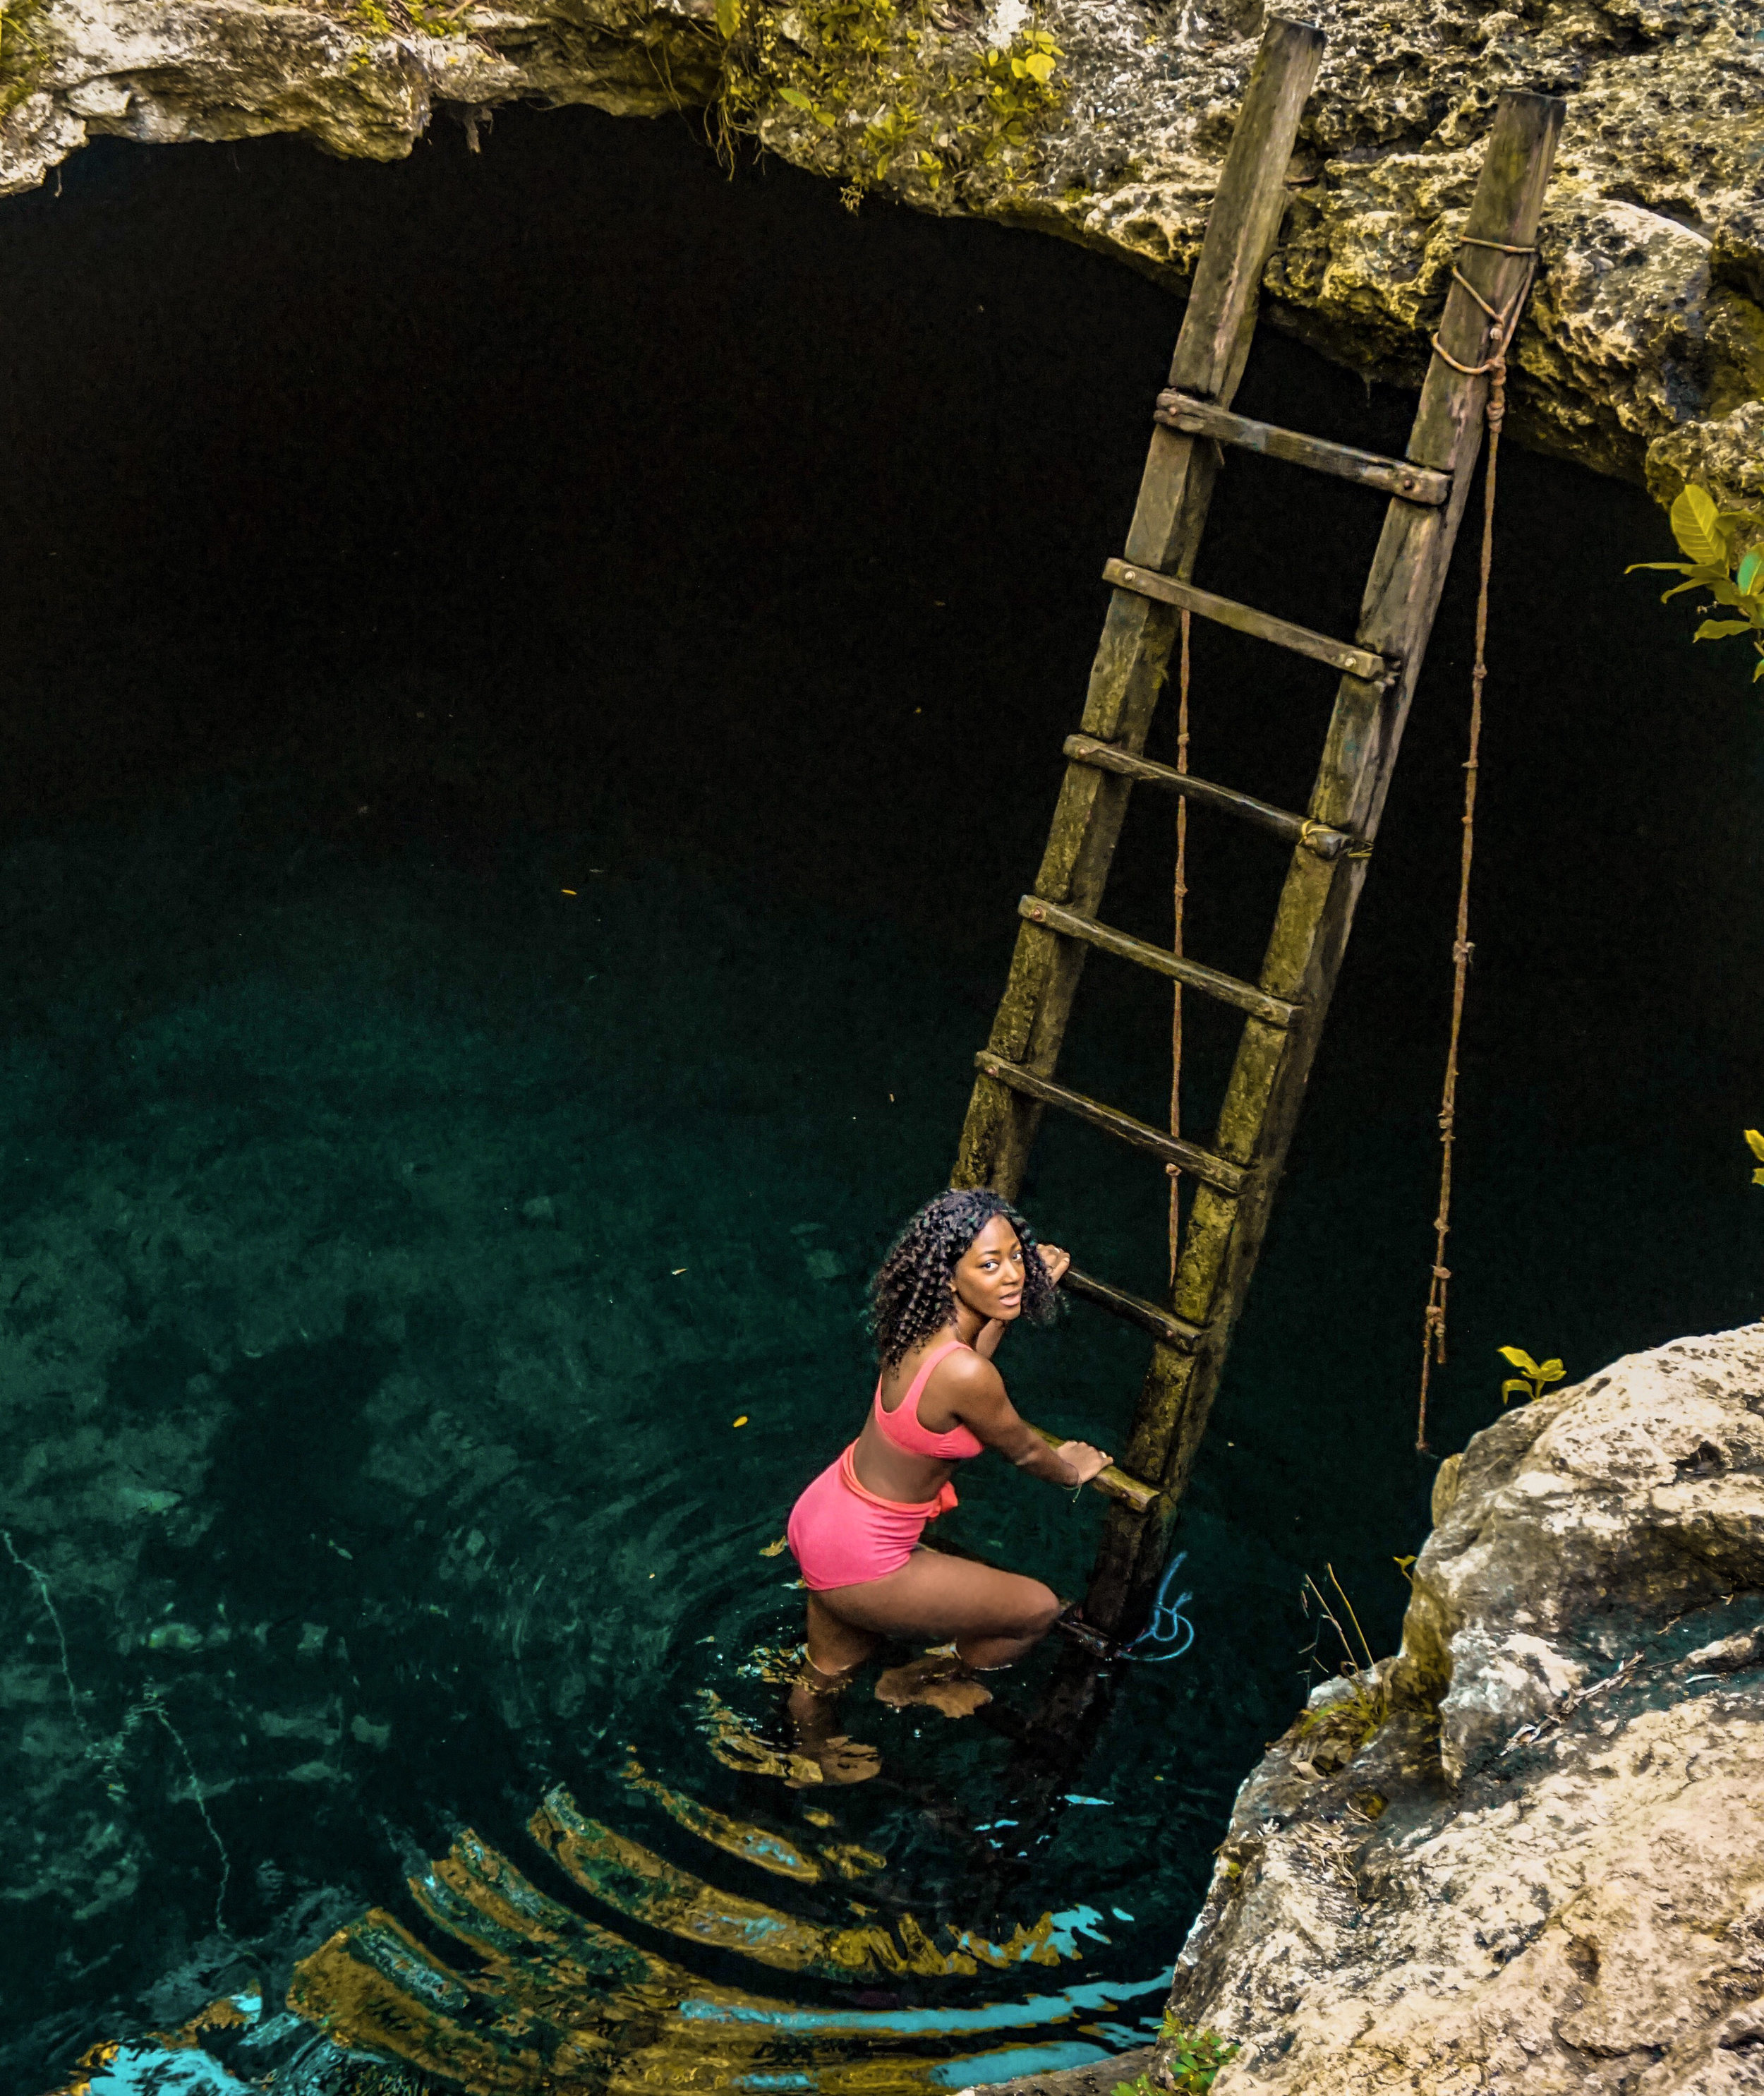 I discovered this low-key cenote in Mexico while scrolling through Instagram one day. This particular photo was taken by travelers who were there to have fun just like me! This photo took less than five minutes, but I stayed in this Cenote for around two hours.